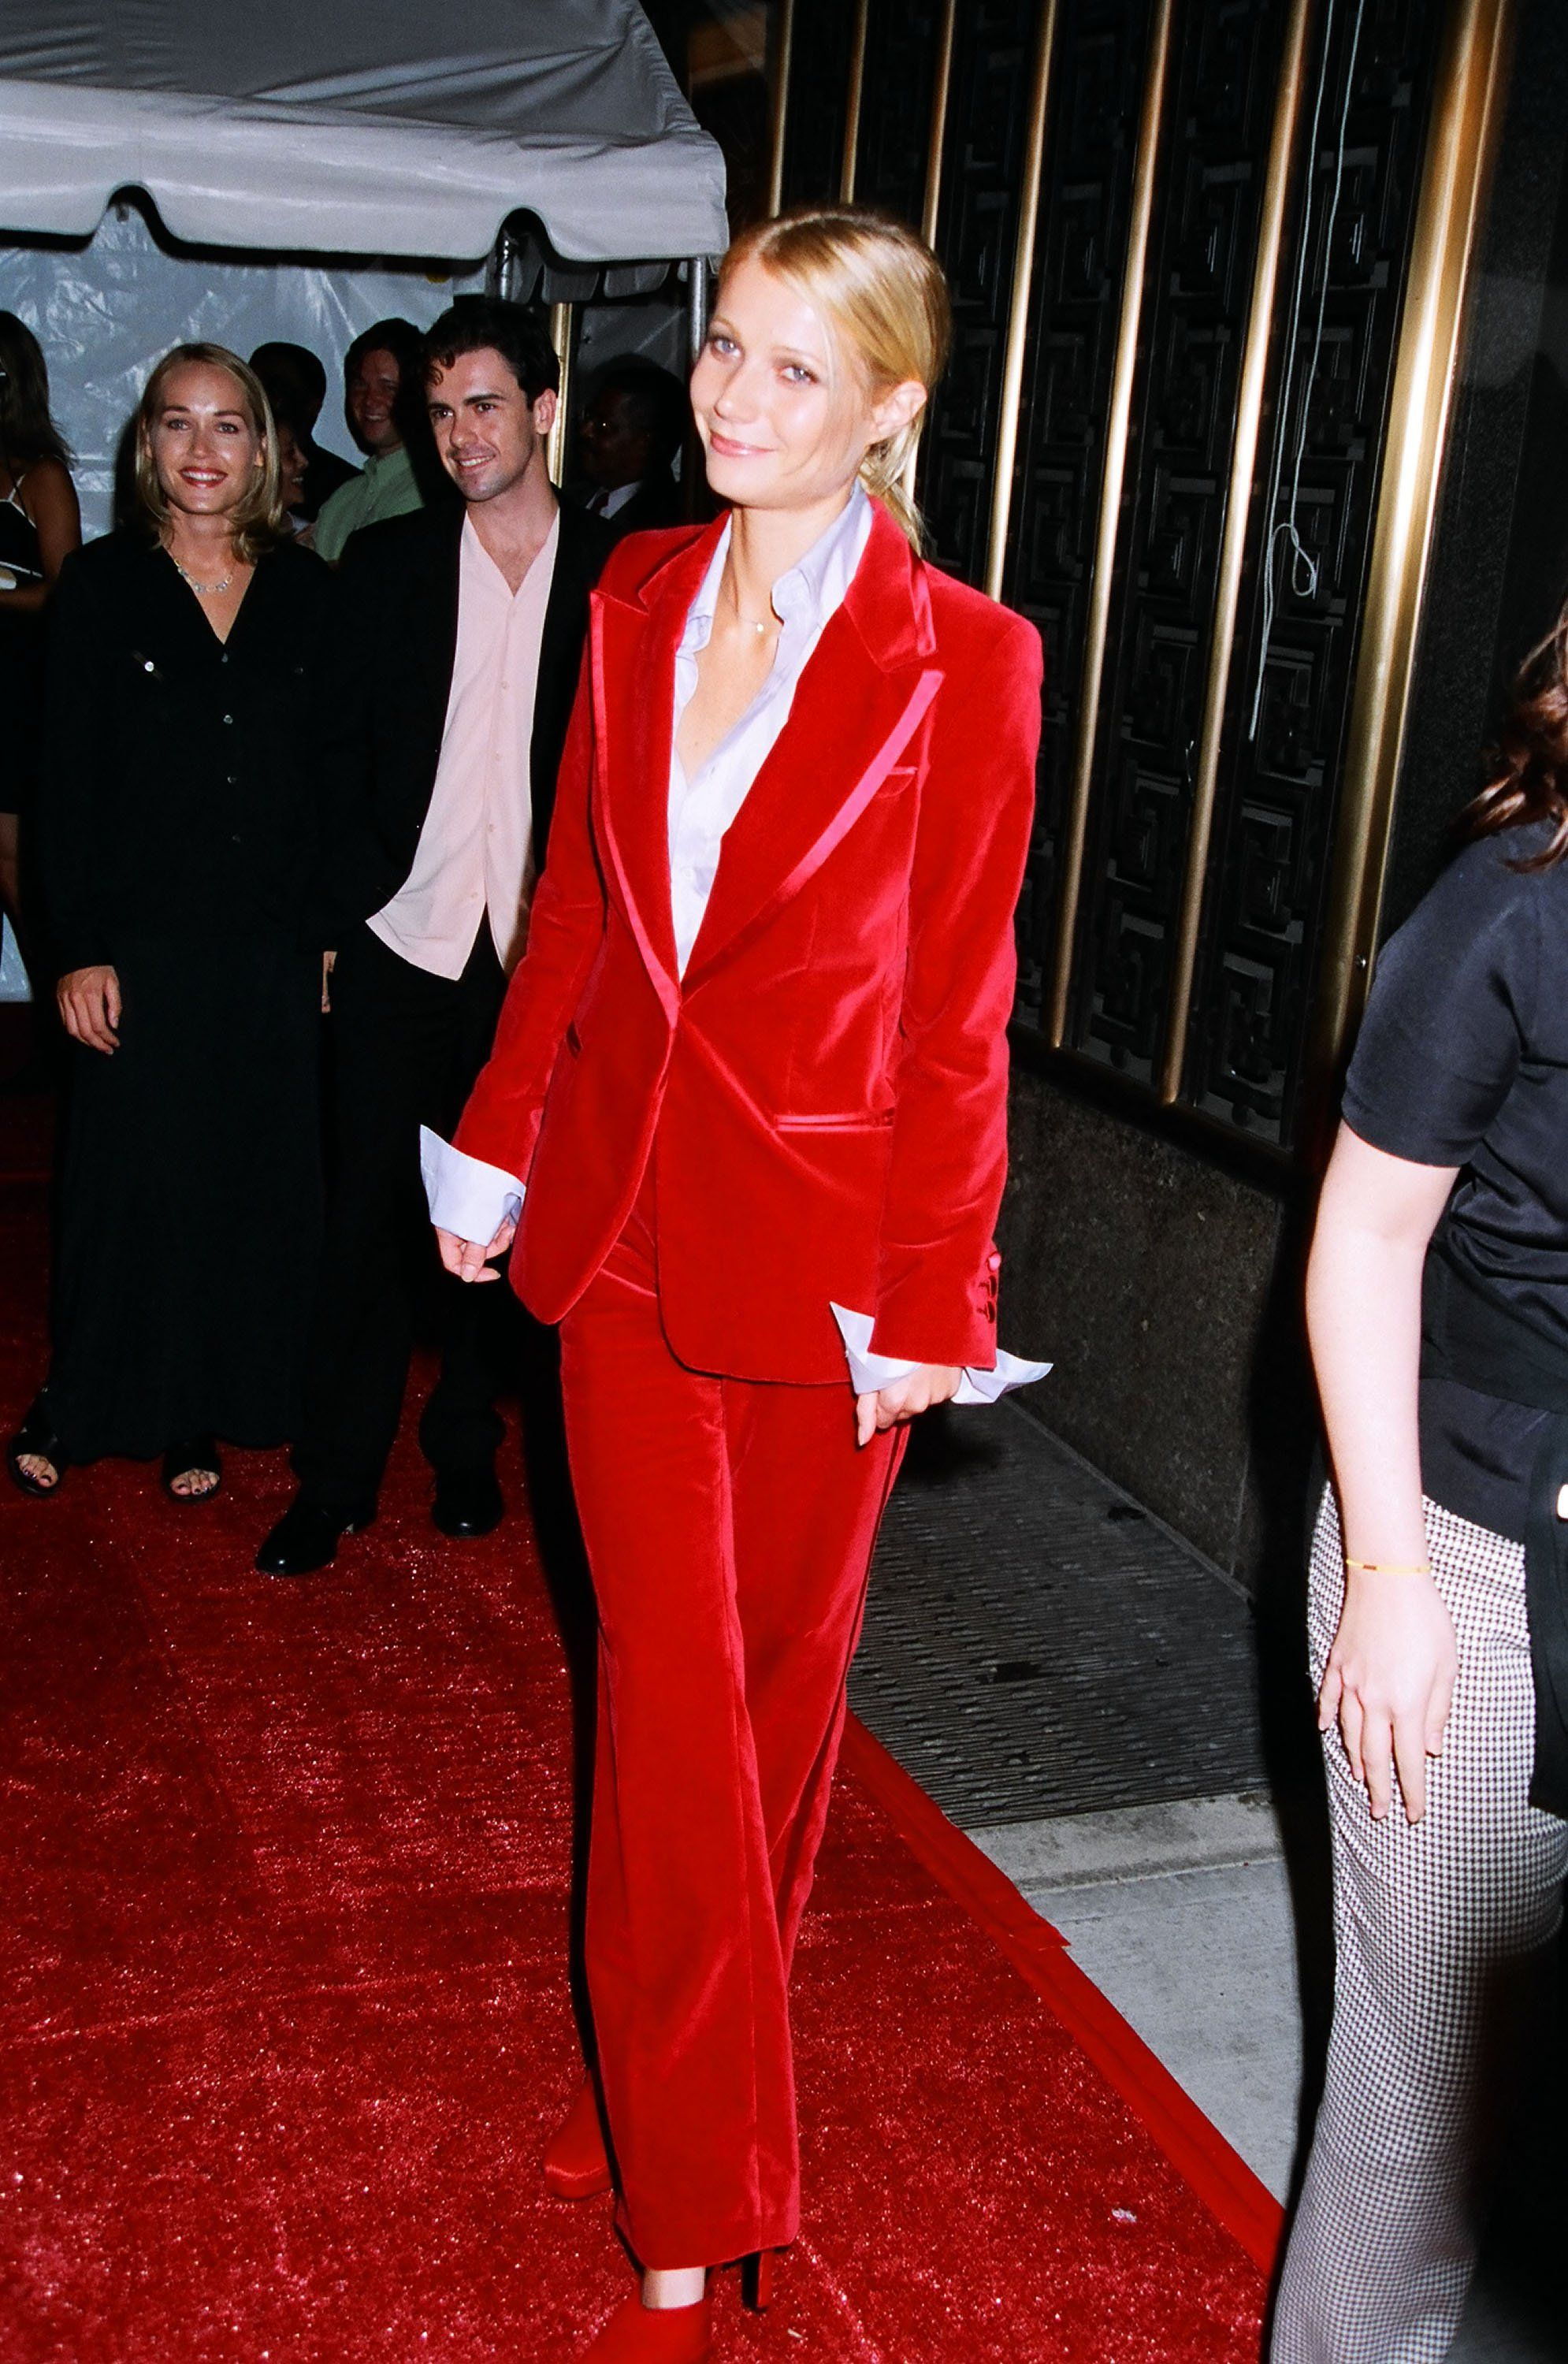 Gwyneth Paltrow In Velvet Red Tom Ford Gucci Suit 1996 Mtv Movie Awards